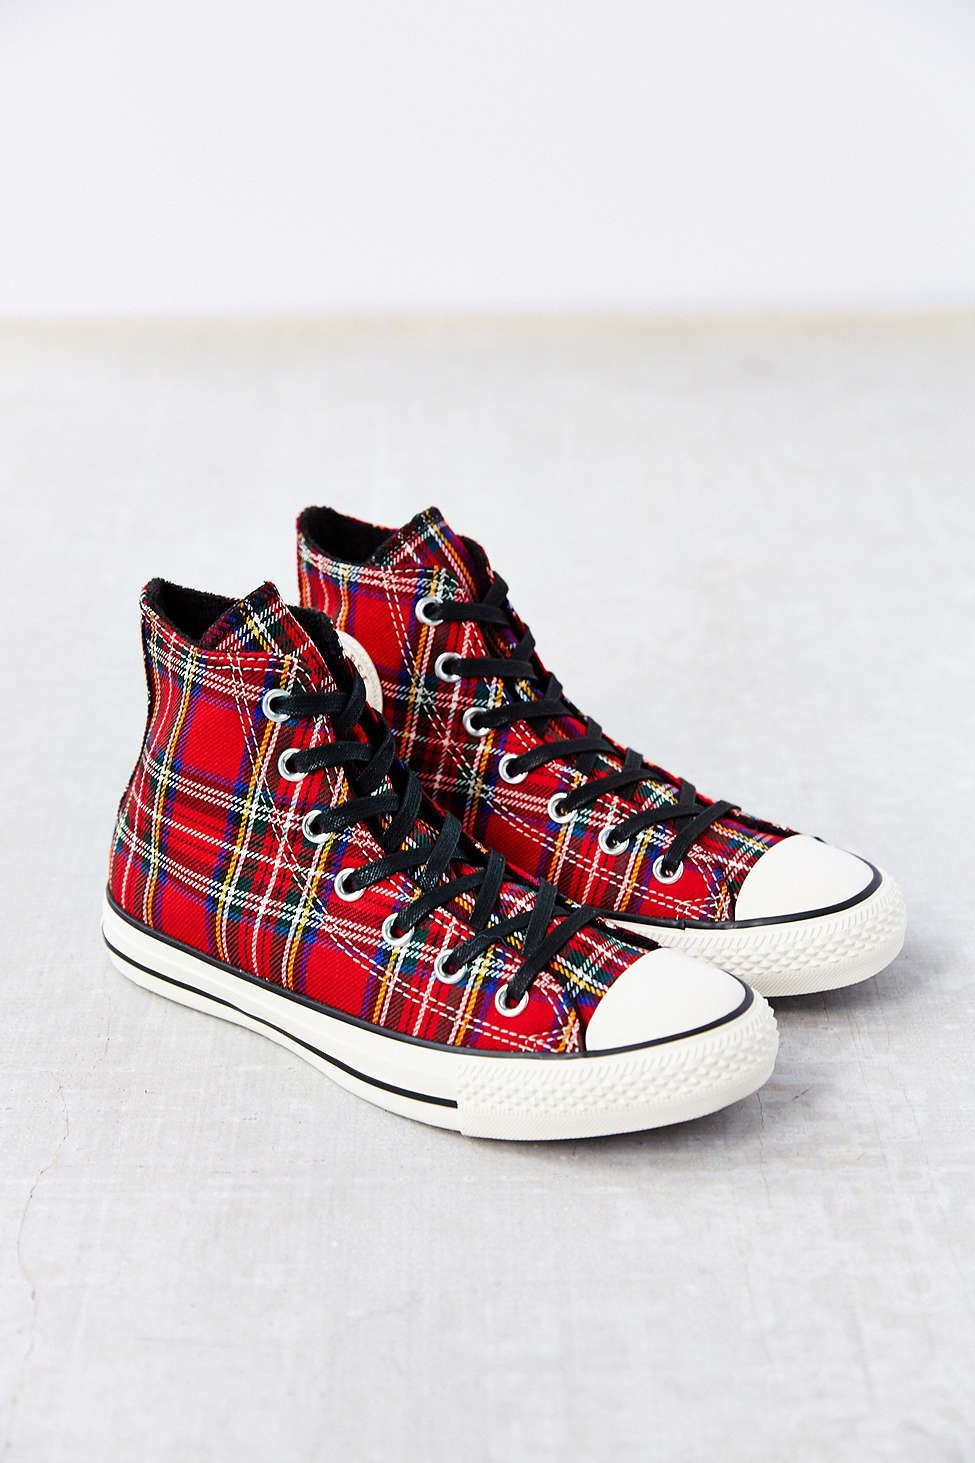 58f6891bce8 Conserve Chuck Taylor All Star Red Tartan Women s High-Top Sneakers ...